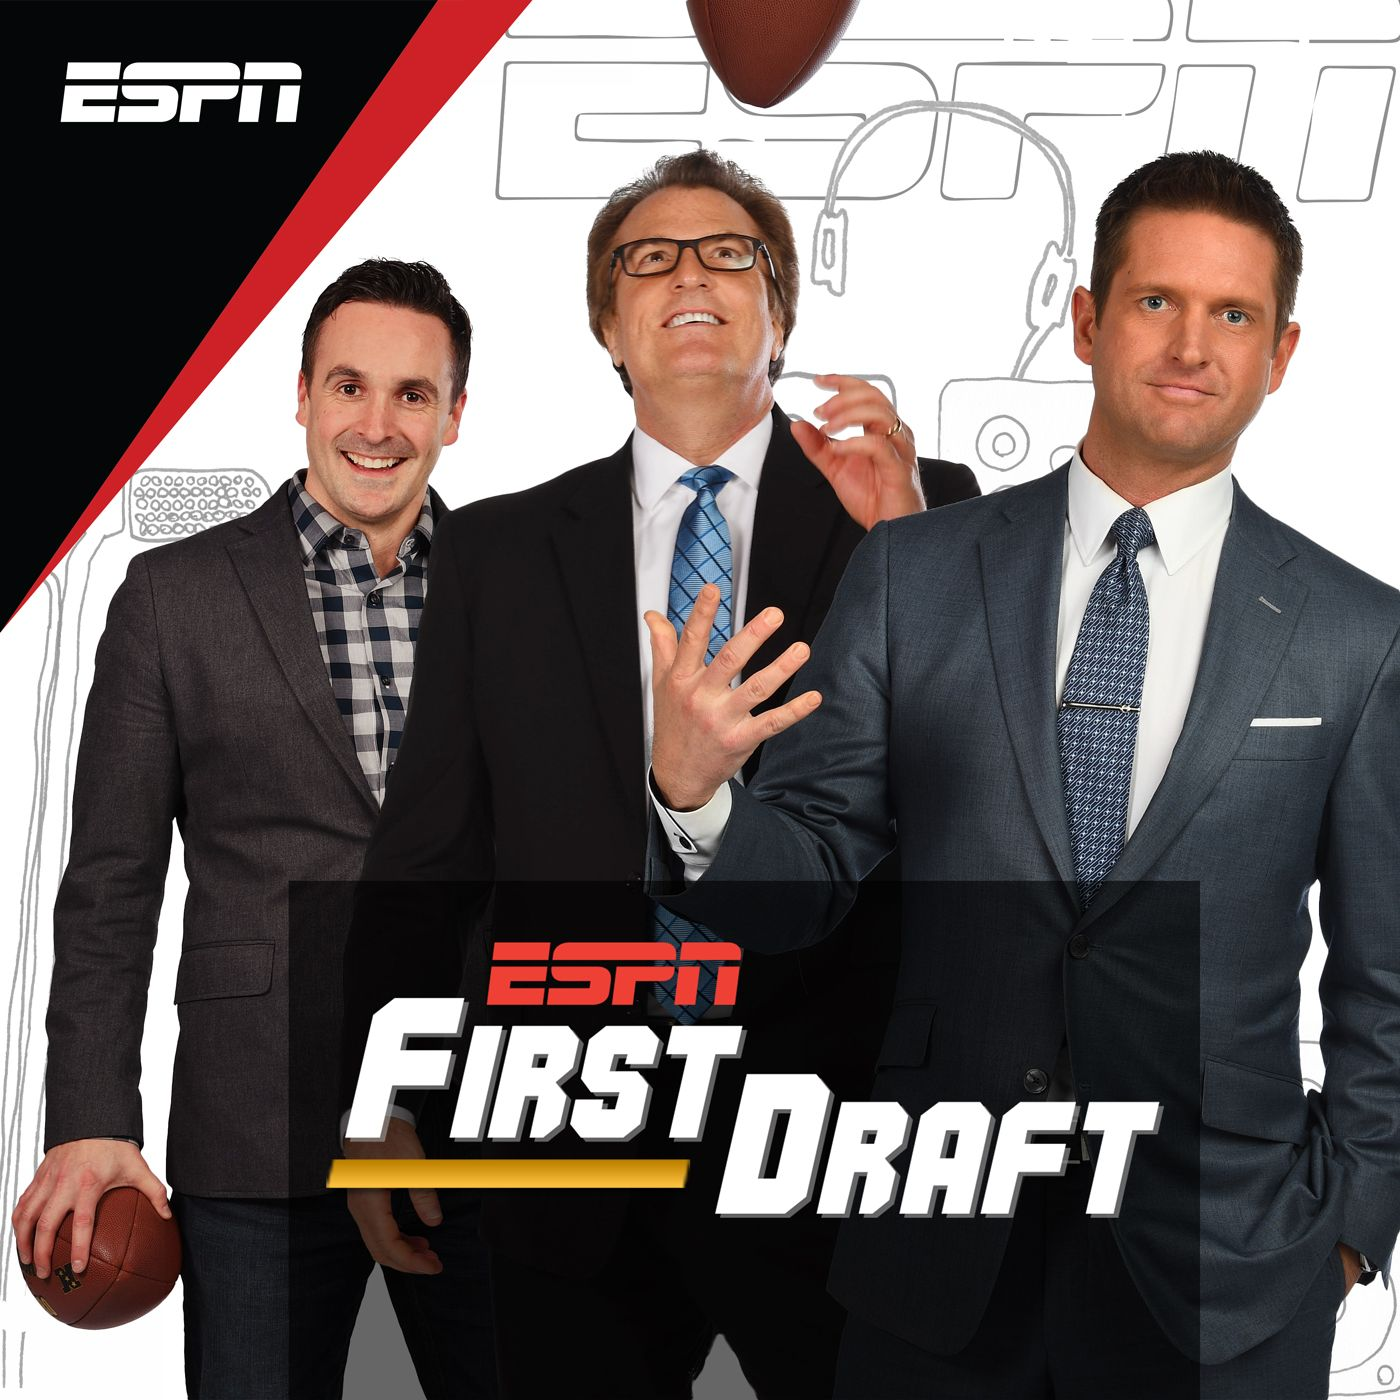 first draft Espn: first draft podcast on demand - espn experts mel kiper jr and todd mcshay keep tabs on the nfl draft throughout the year espn experts mel kiper jr and todd mcshay keep tabs on the nfl draft throughout the year.